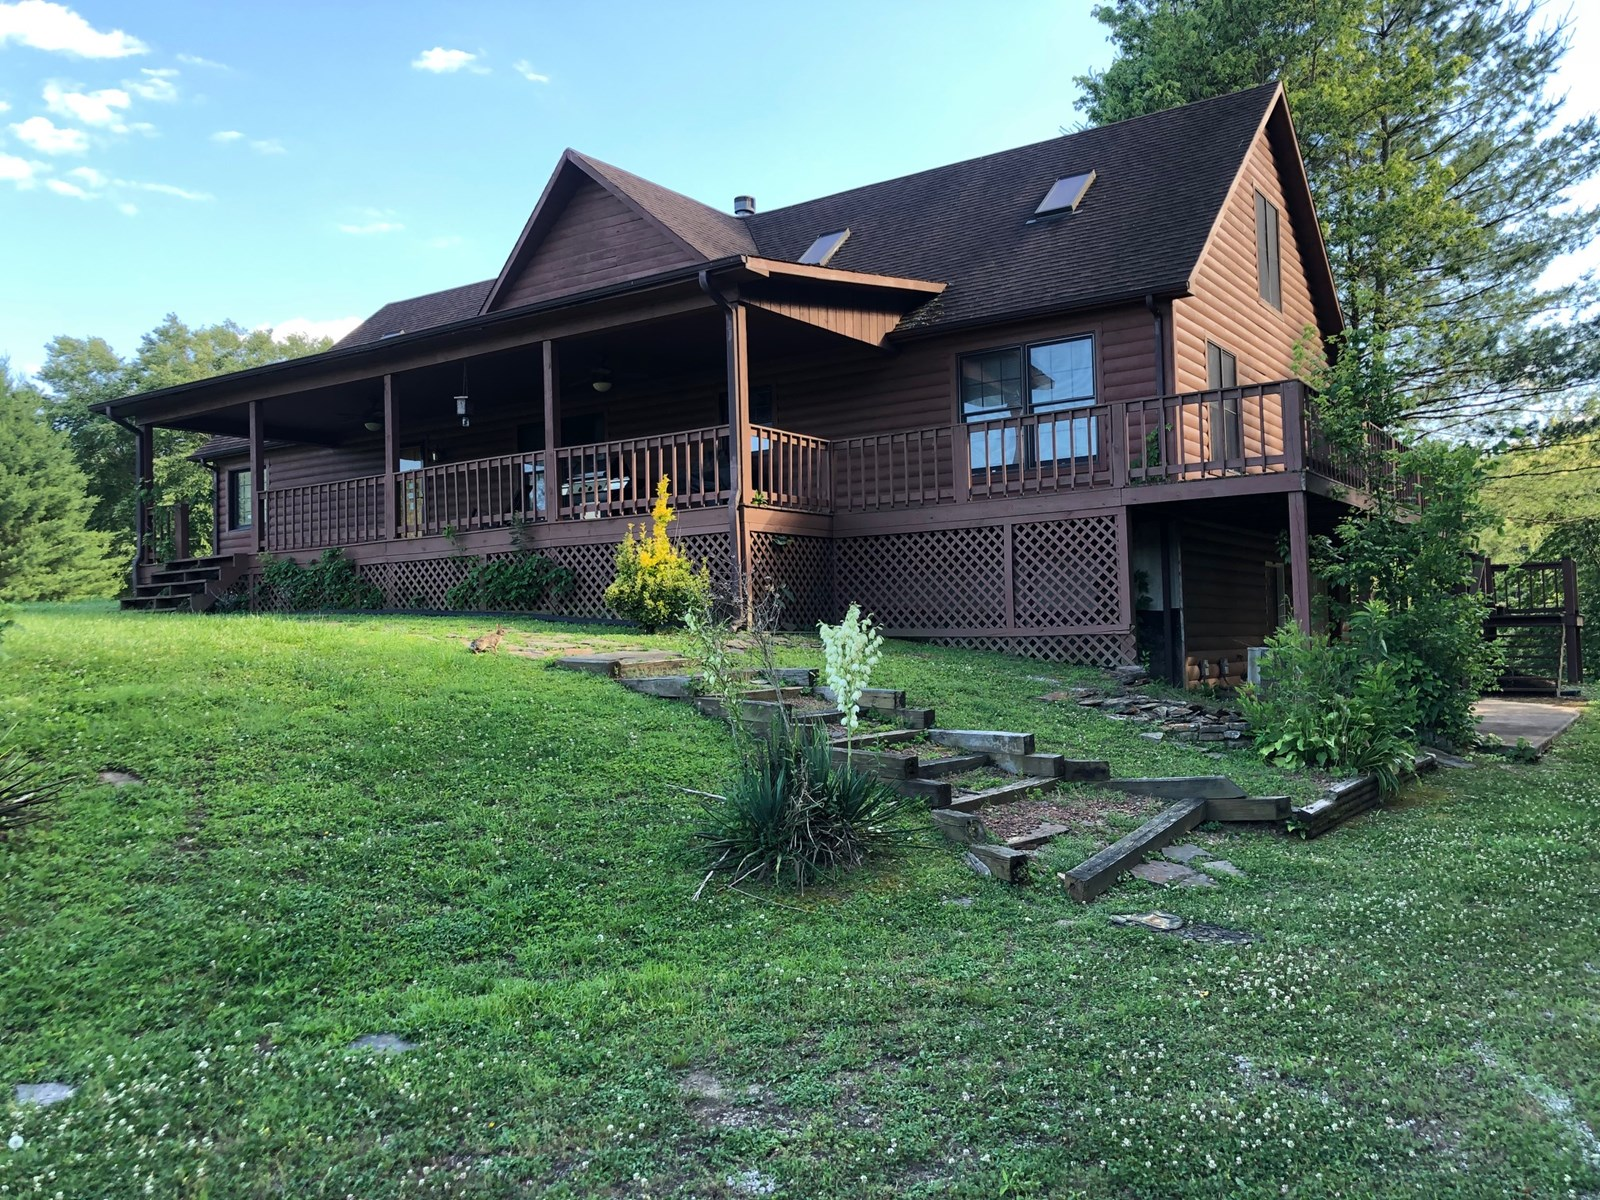 Log home for sale on the Cumberland River, Kentucky